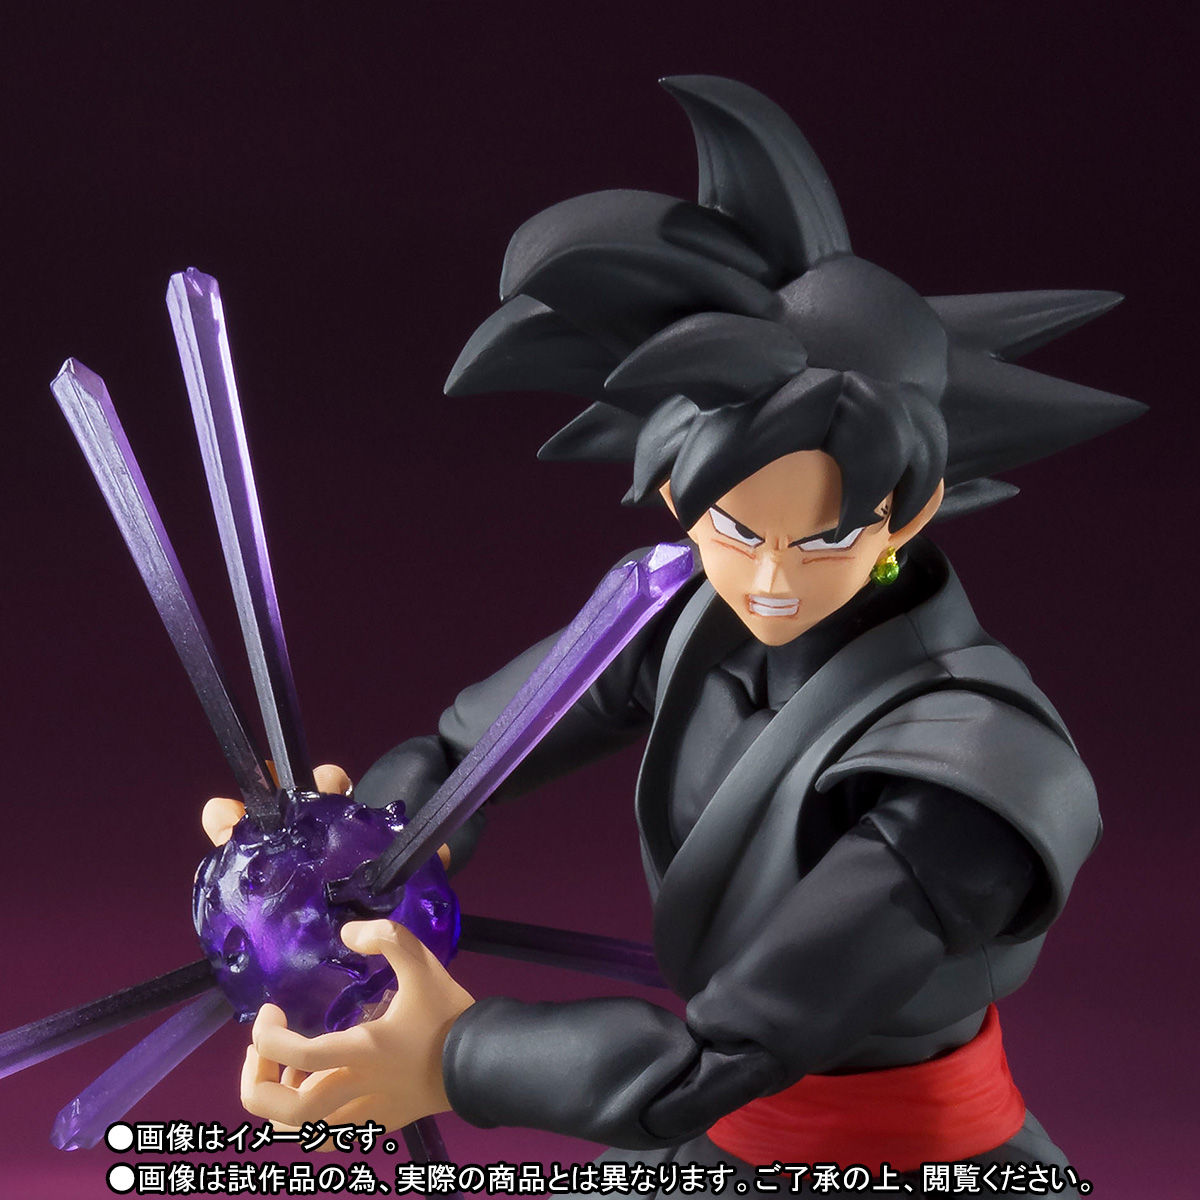 S.H. Figuarts Dragon Ball Super Goku Black Figure Selling Out Everywhere